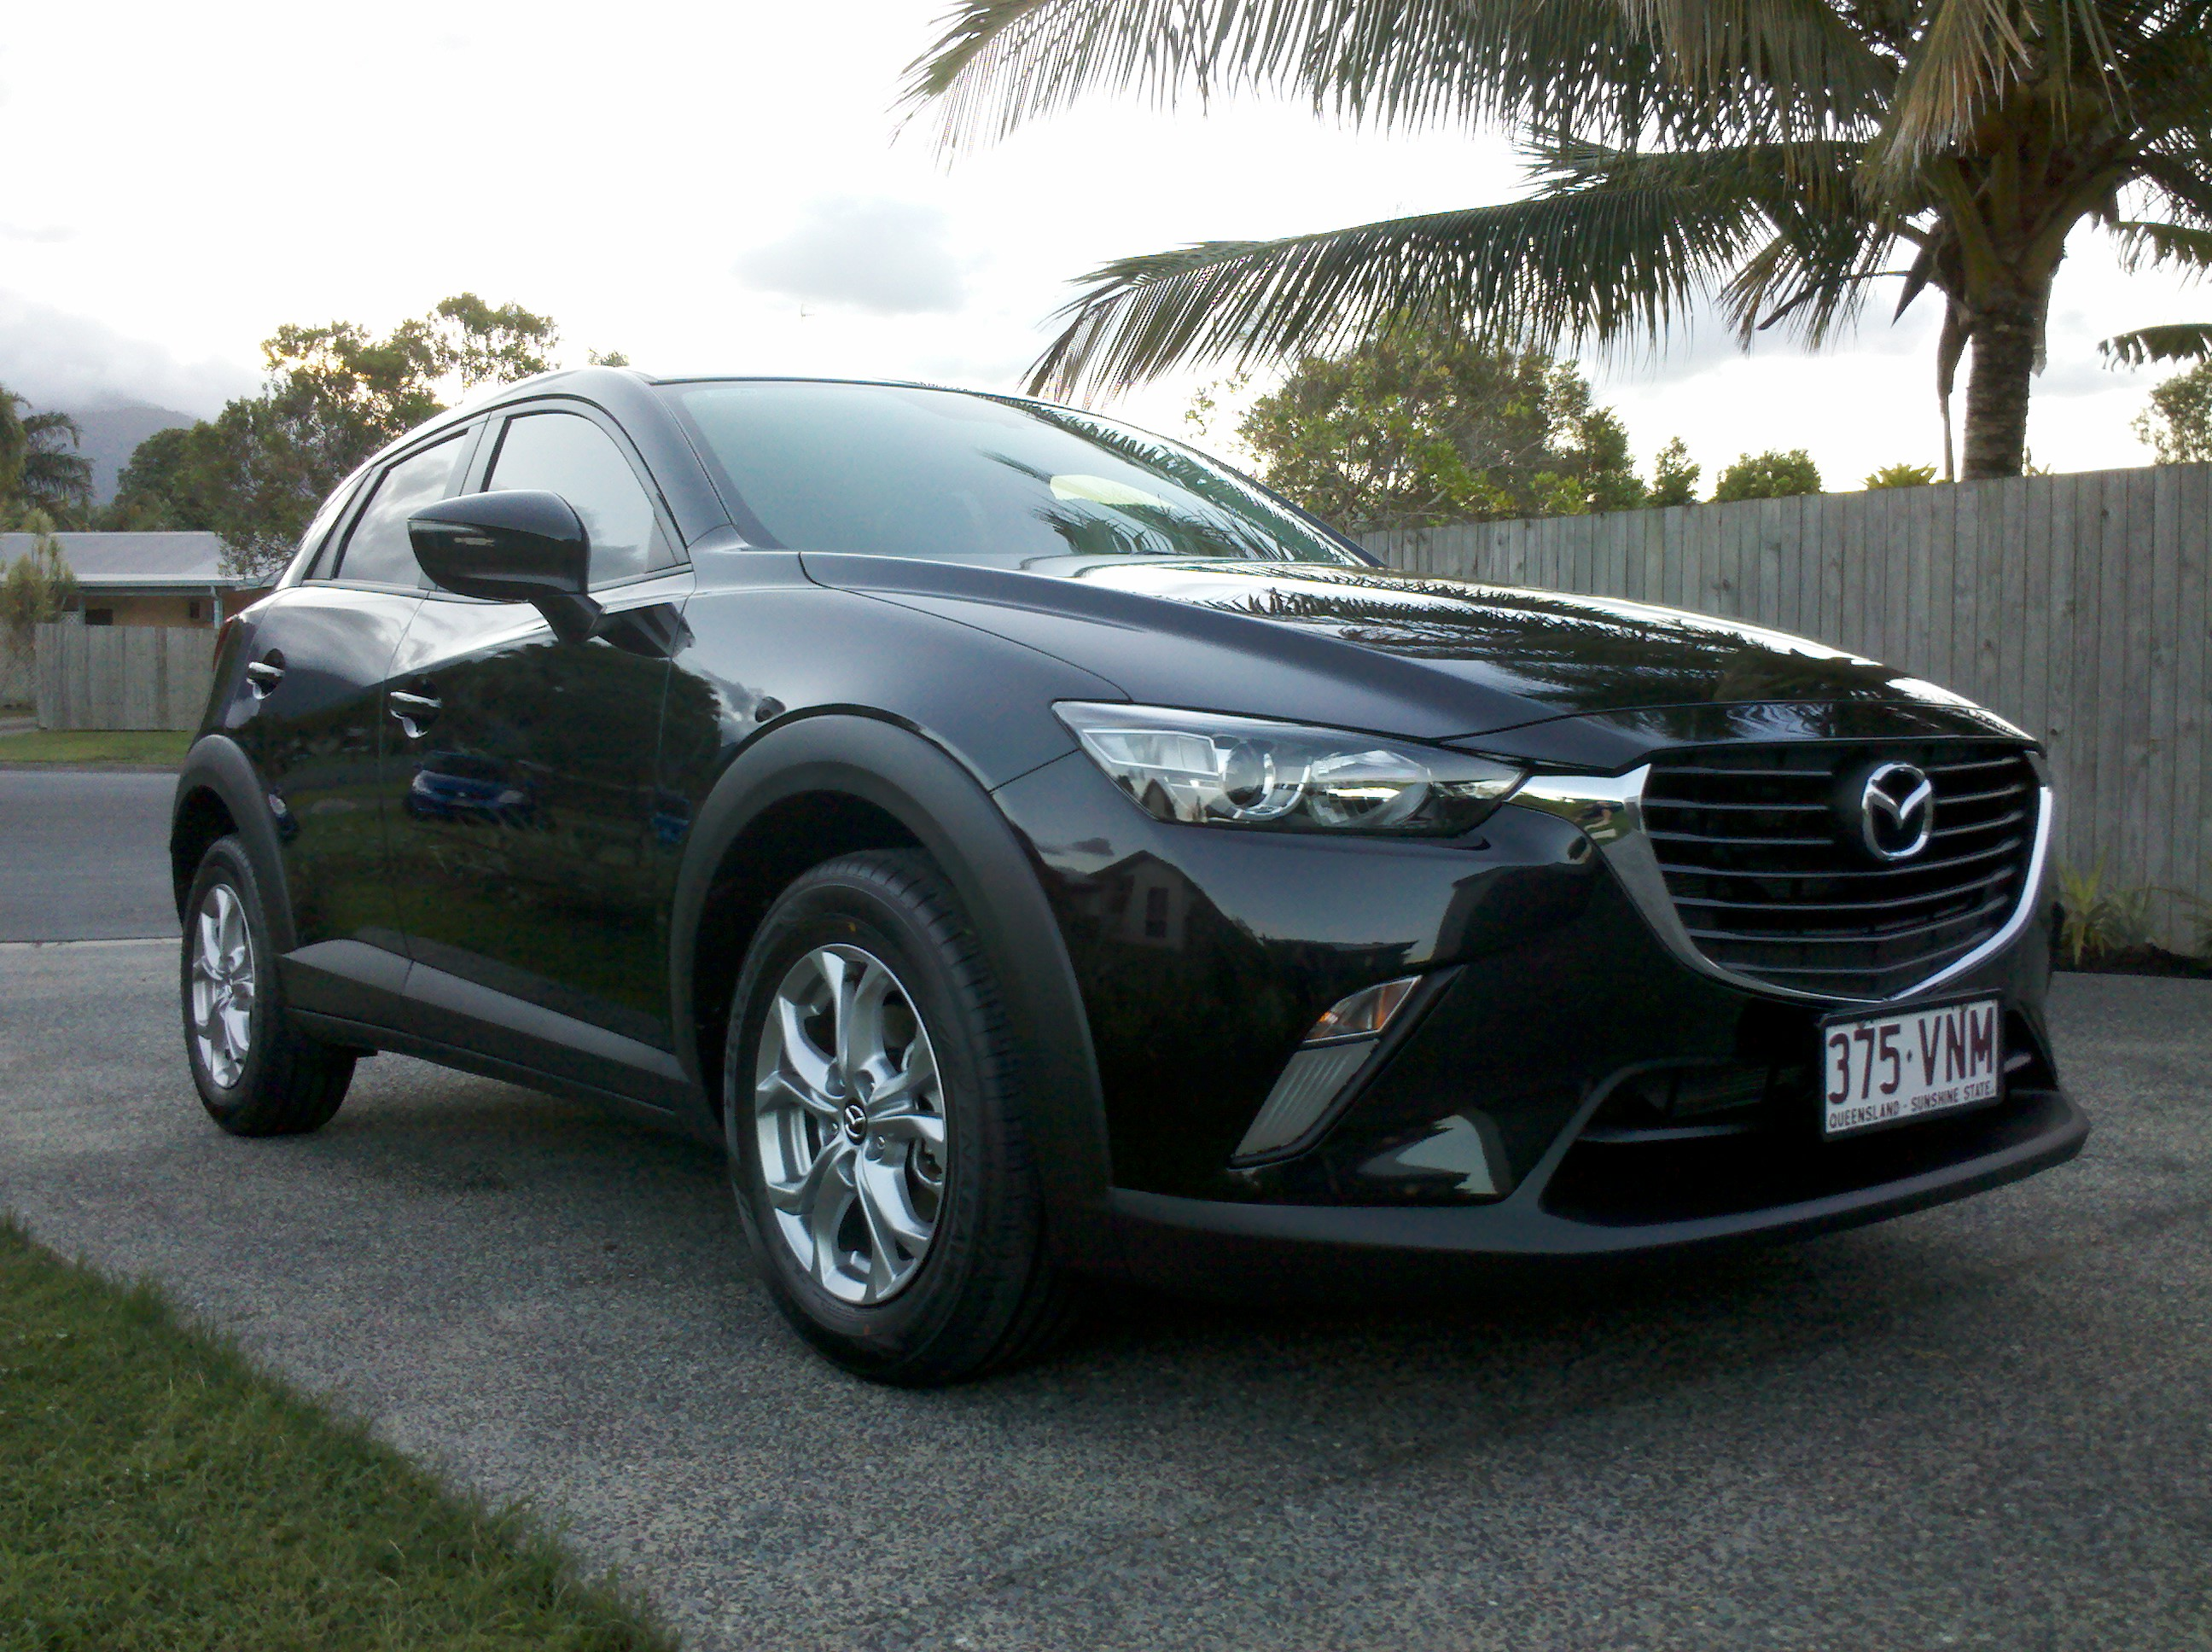 2015 mazda cx 5 maxx review photos caradvice. Black Bedroom Furniture Sets. Home Design Ideas